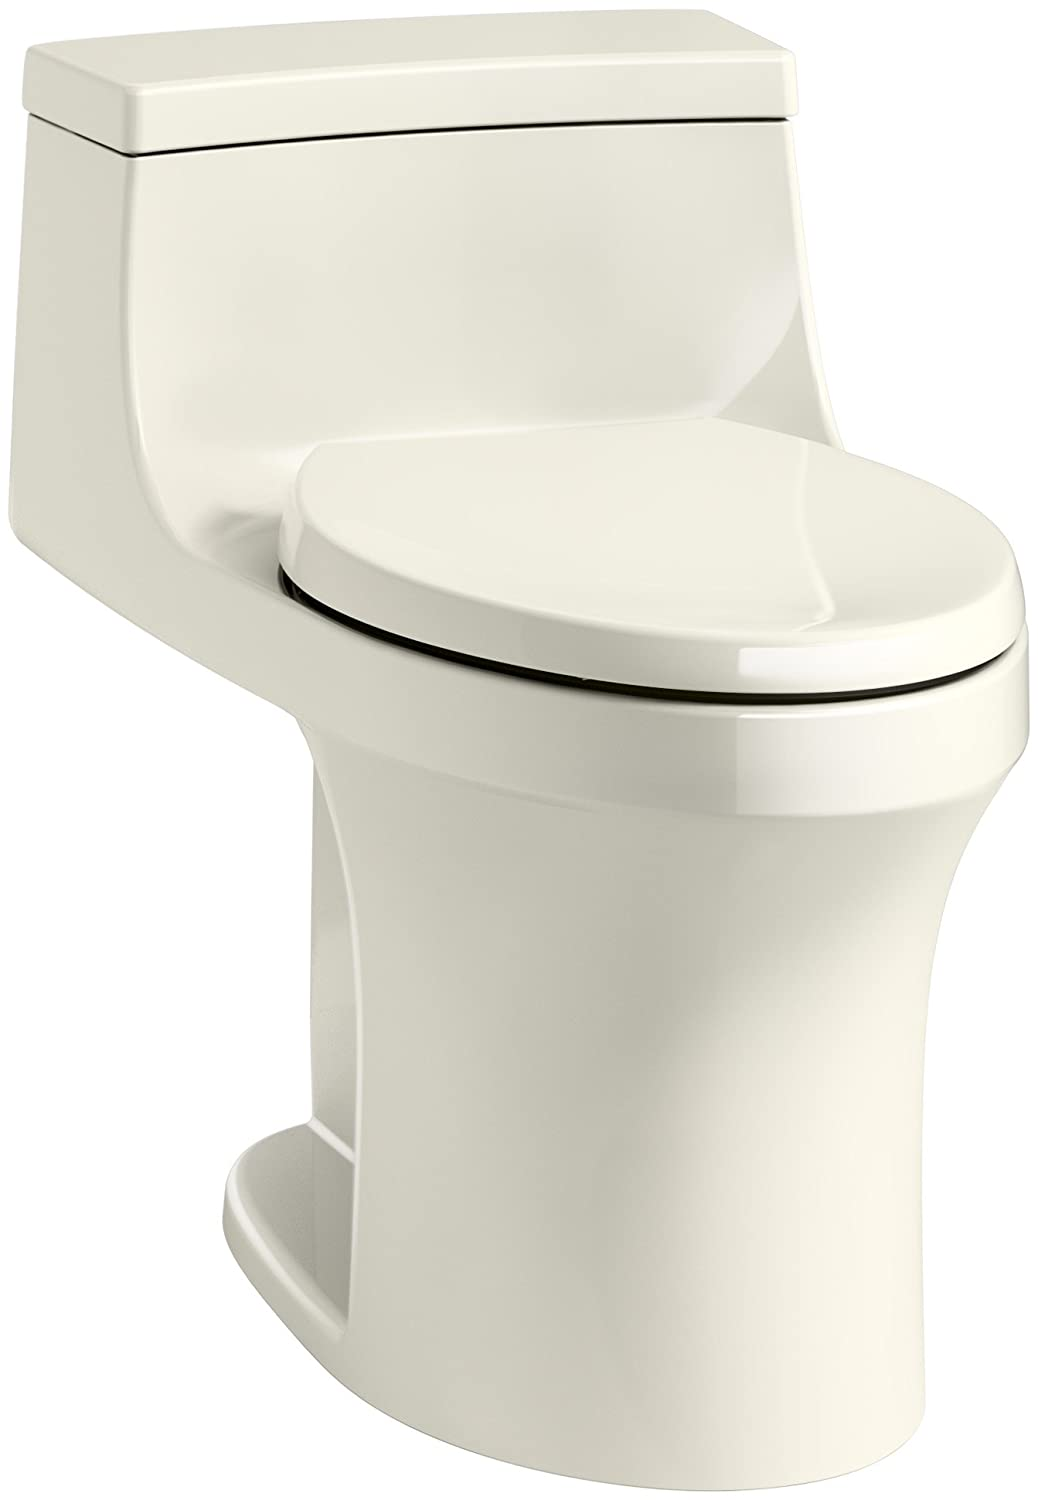 KOHLER K-5172-RA-0 San Souci Comfort Height Compact Elongated 1.28 ...